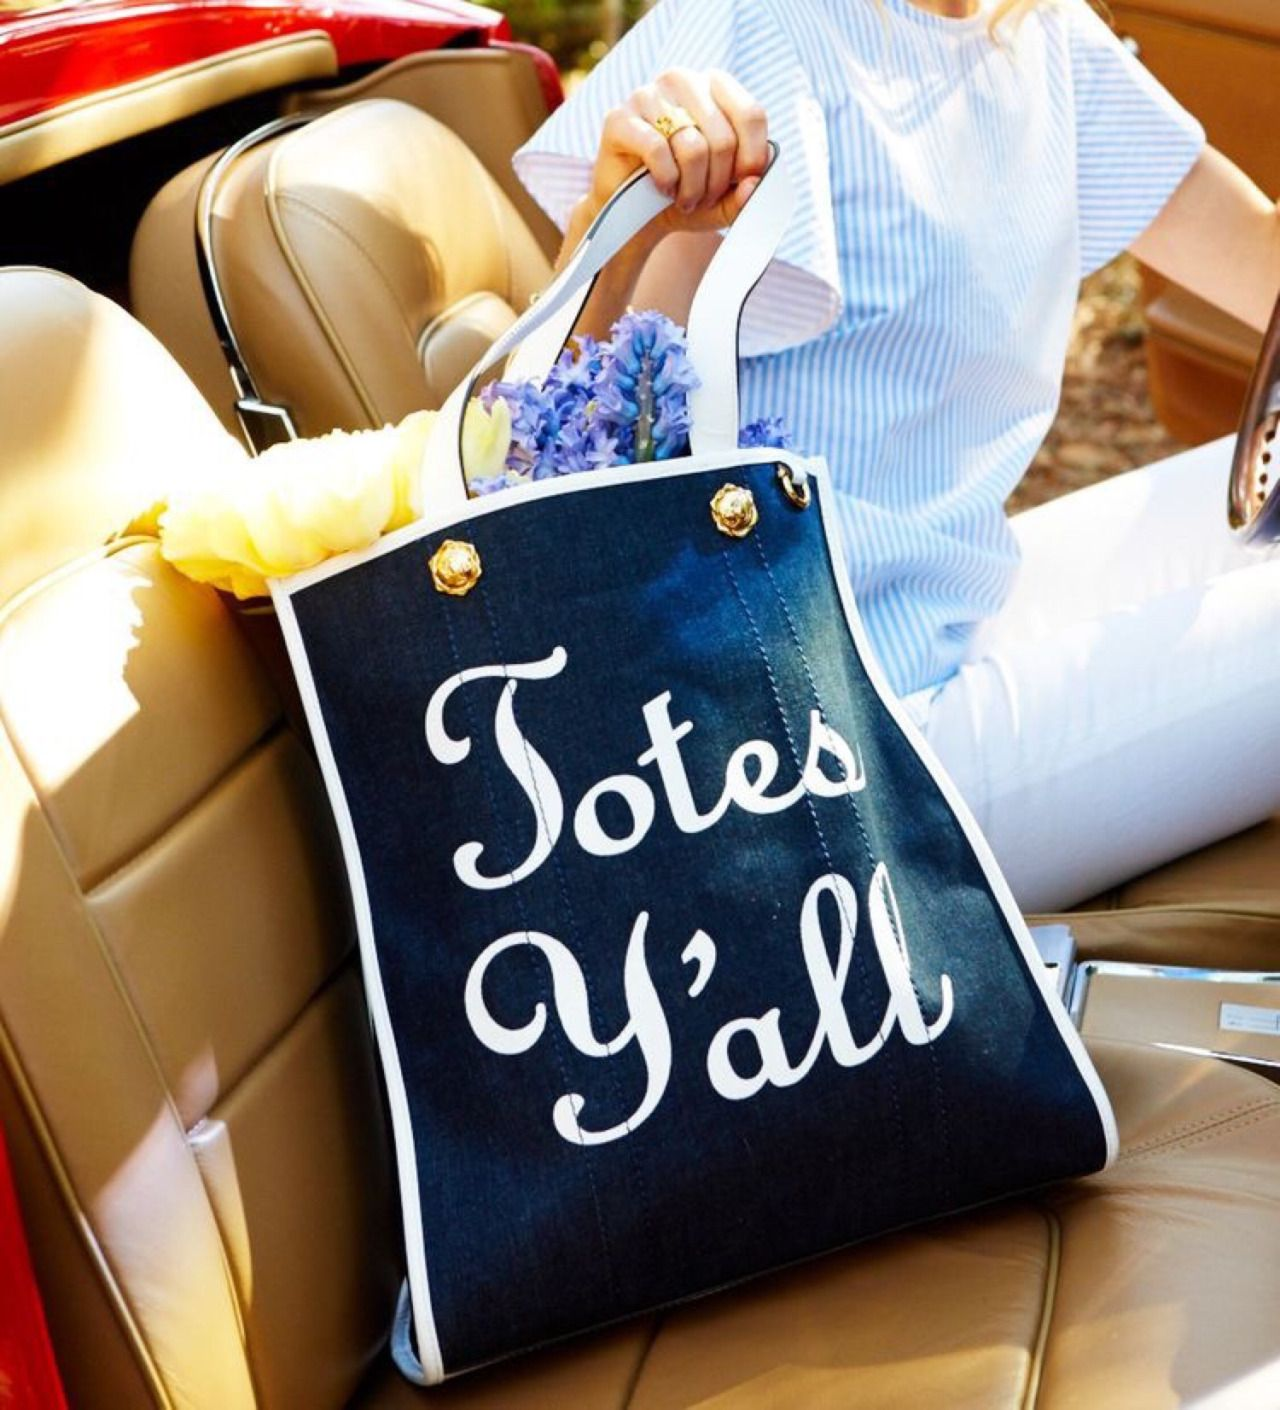 Totes Y'all! Tote bag. Too cute! https://www.draperjames.com/totes ...